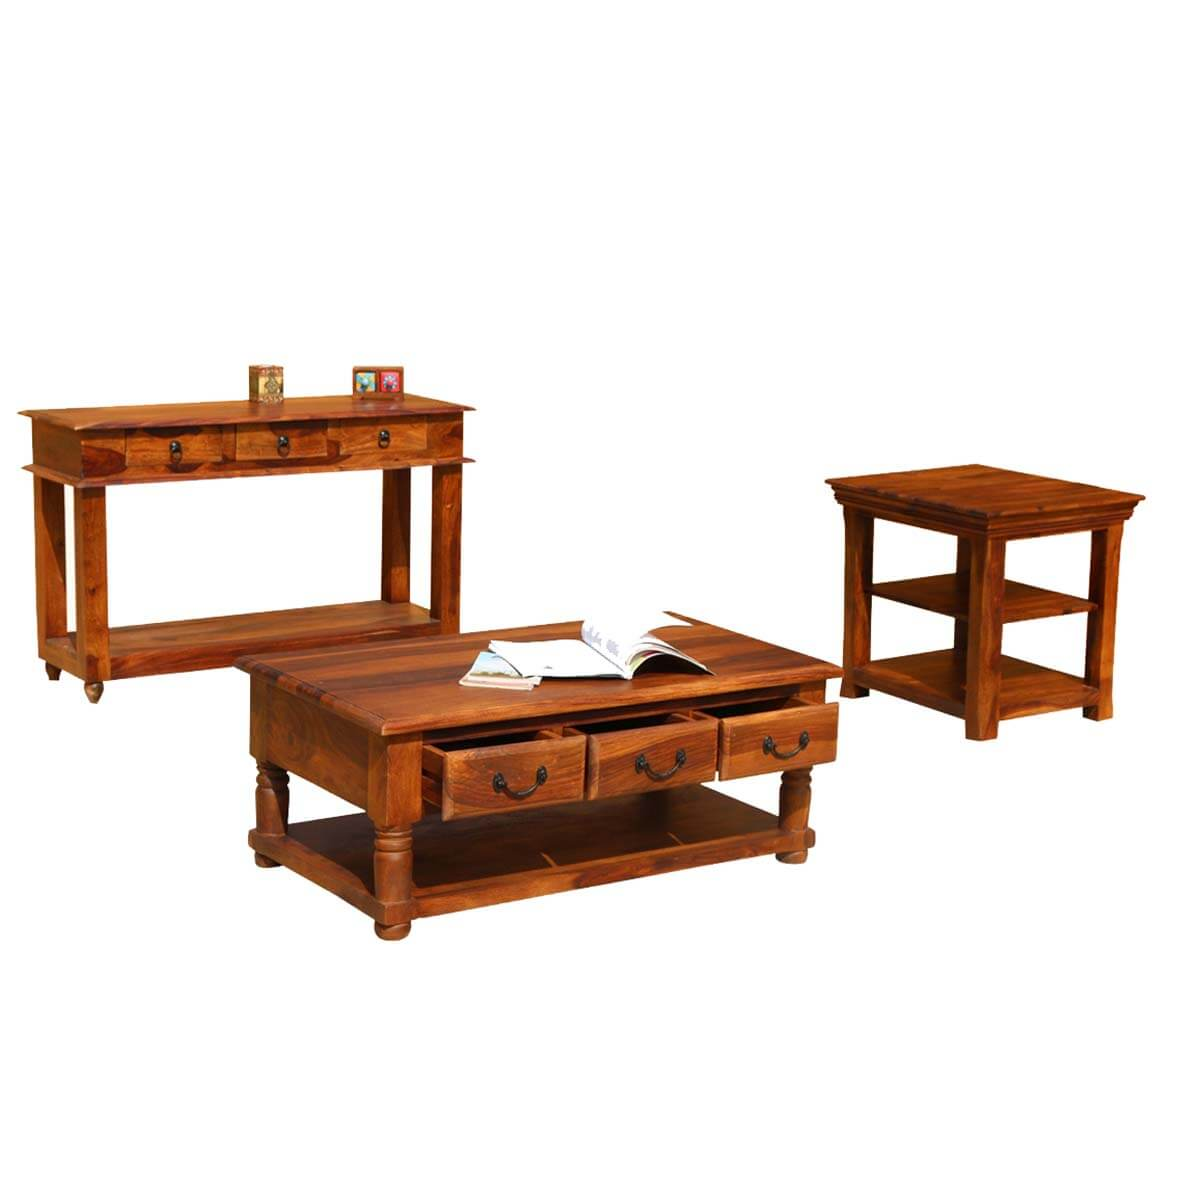 Early American Solid Wood Console Coffee & Accent Table 3pc Set